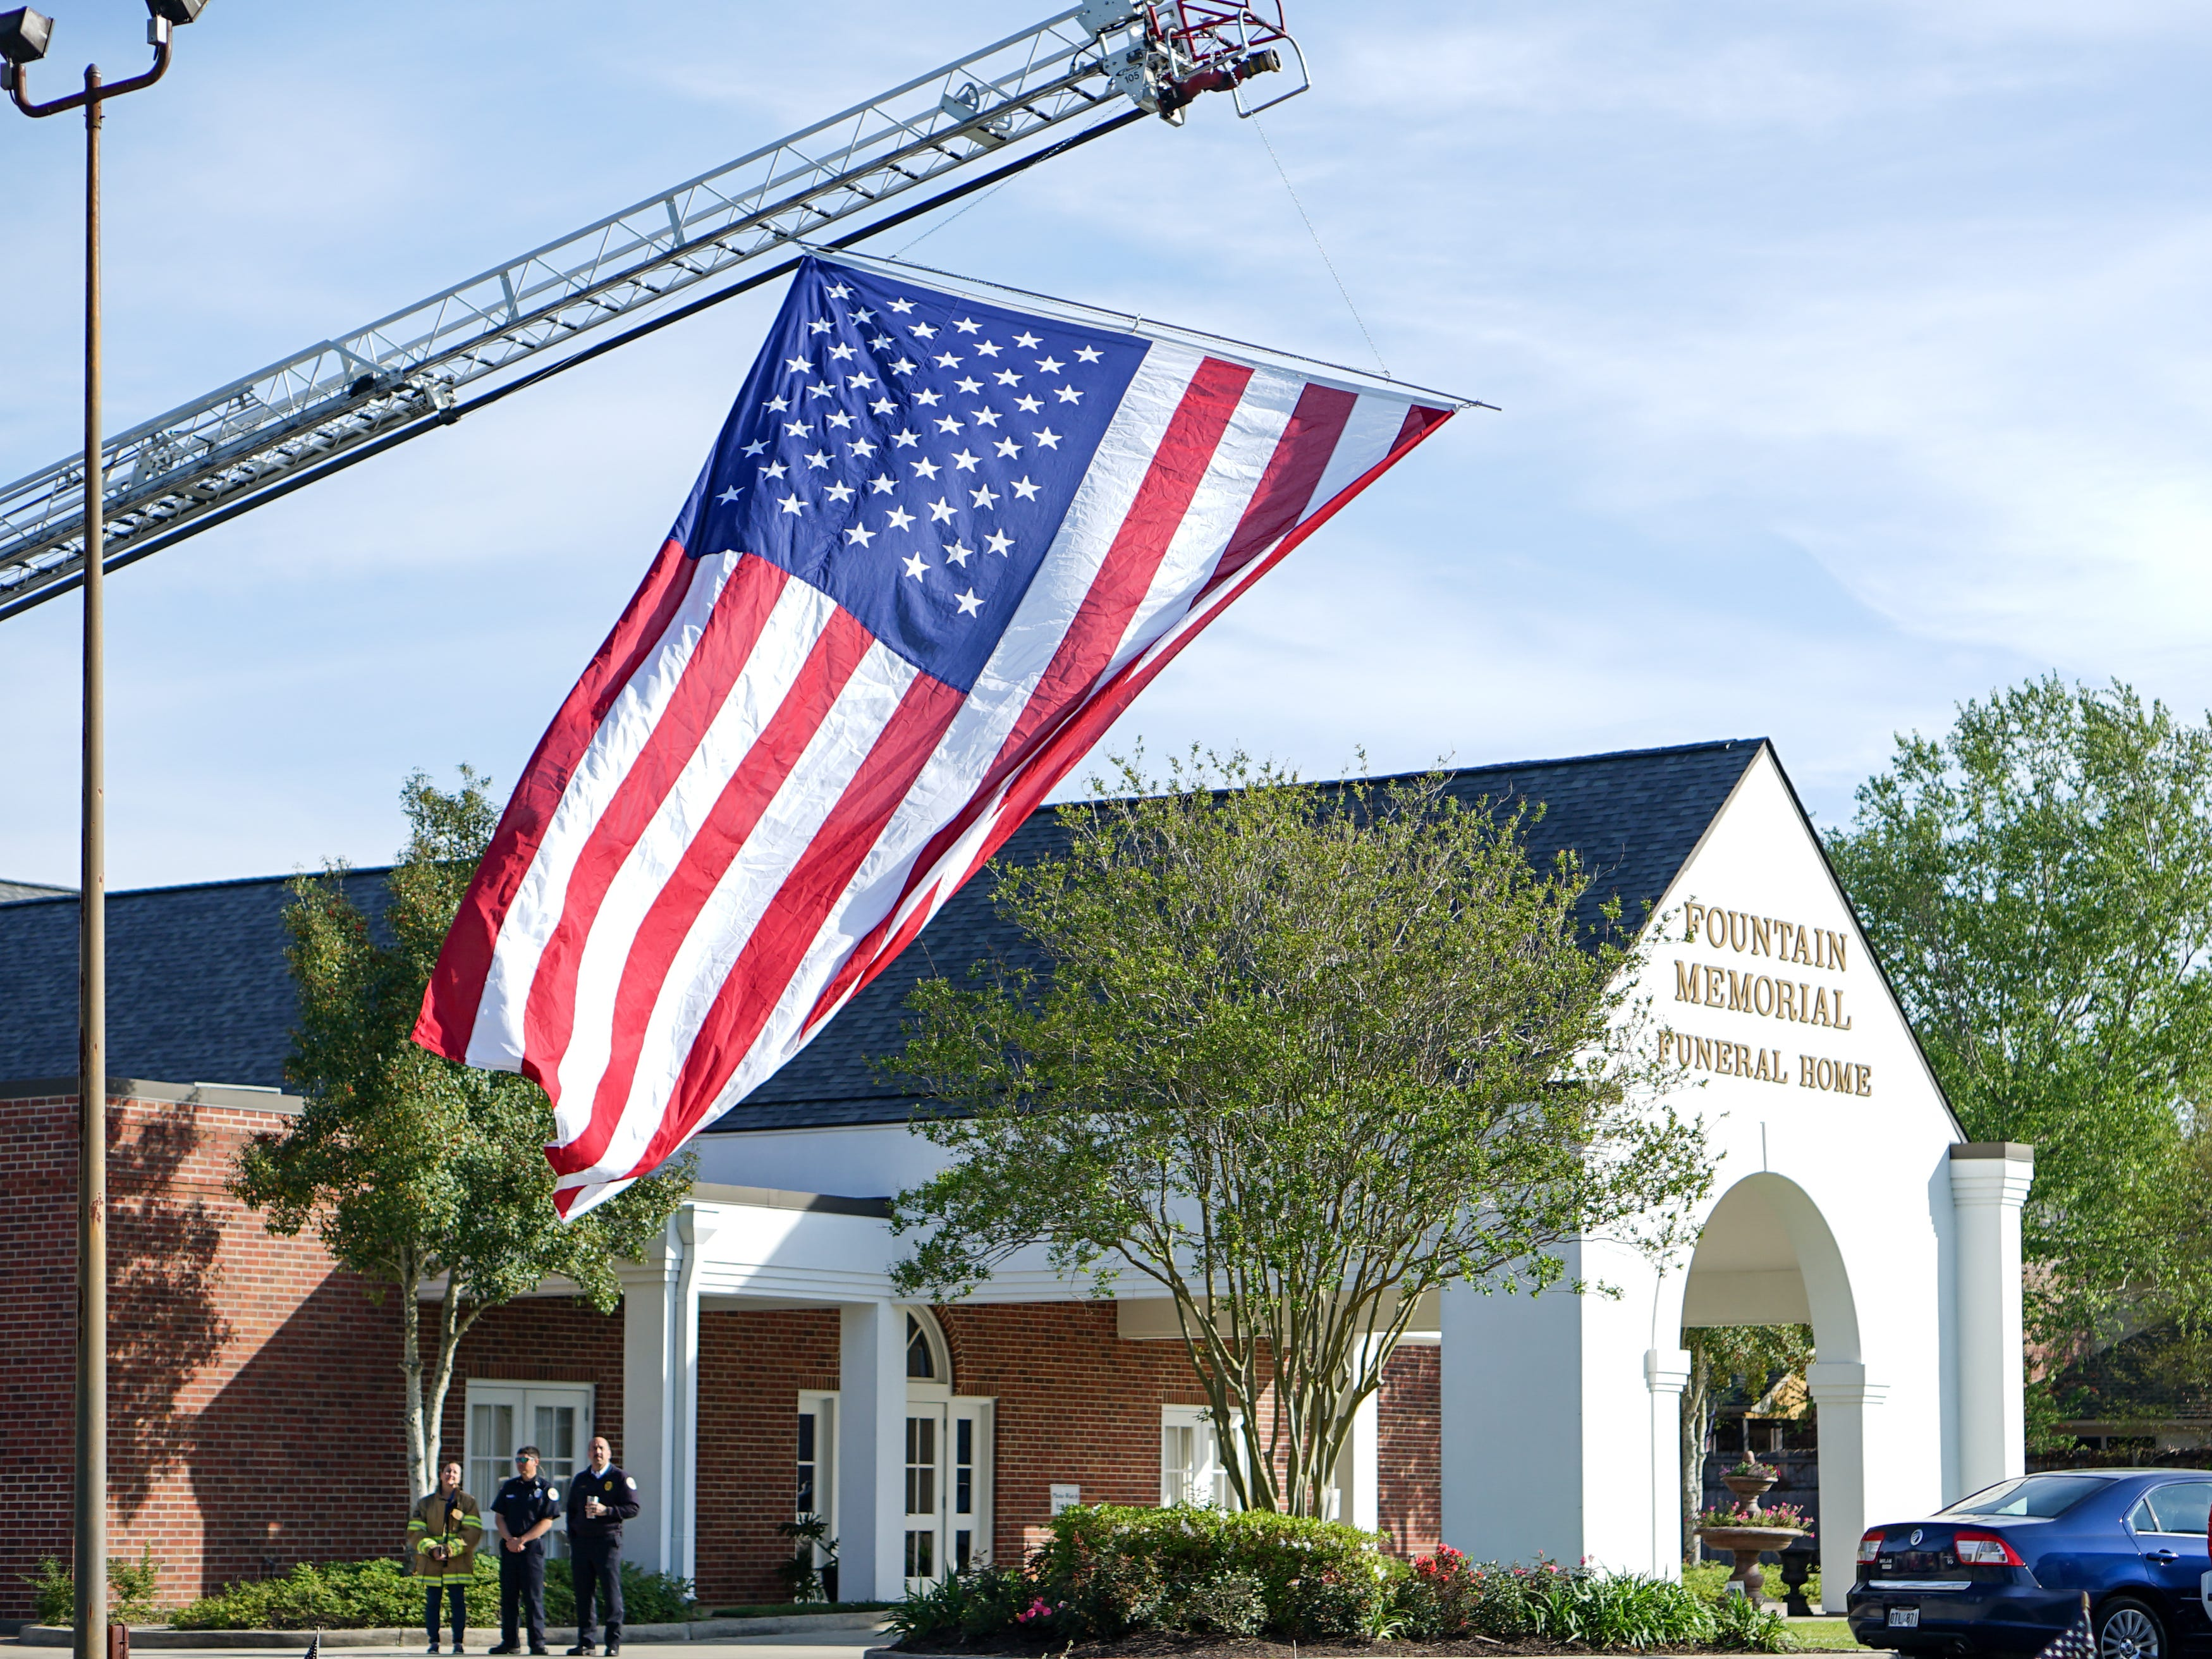 """The """"Welcome Home Vietnam Veterans"""" event is held at Fountain Memorial Funeral Home and Cemetery in Lafayette on Friday, March 29, 2019."""